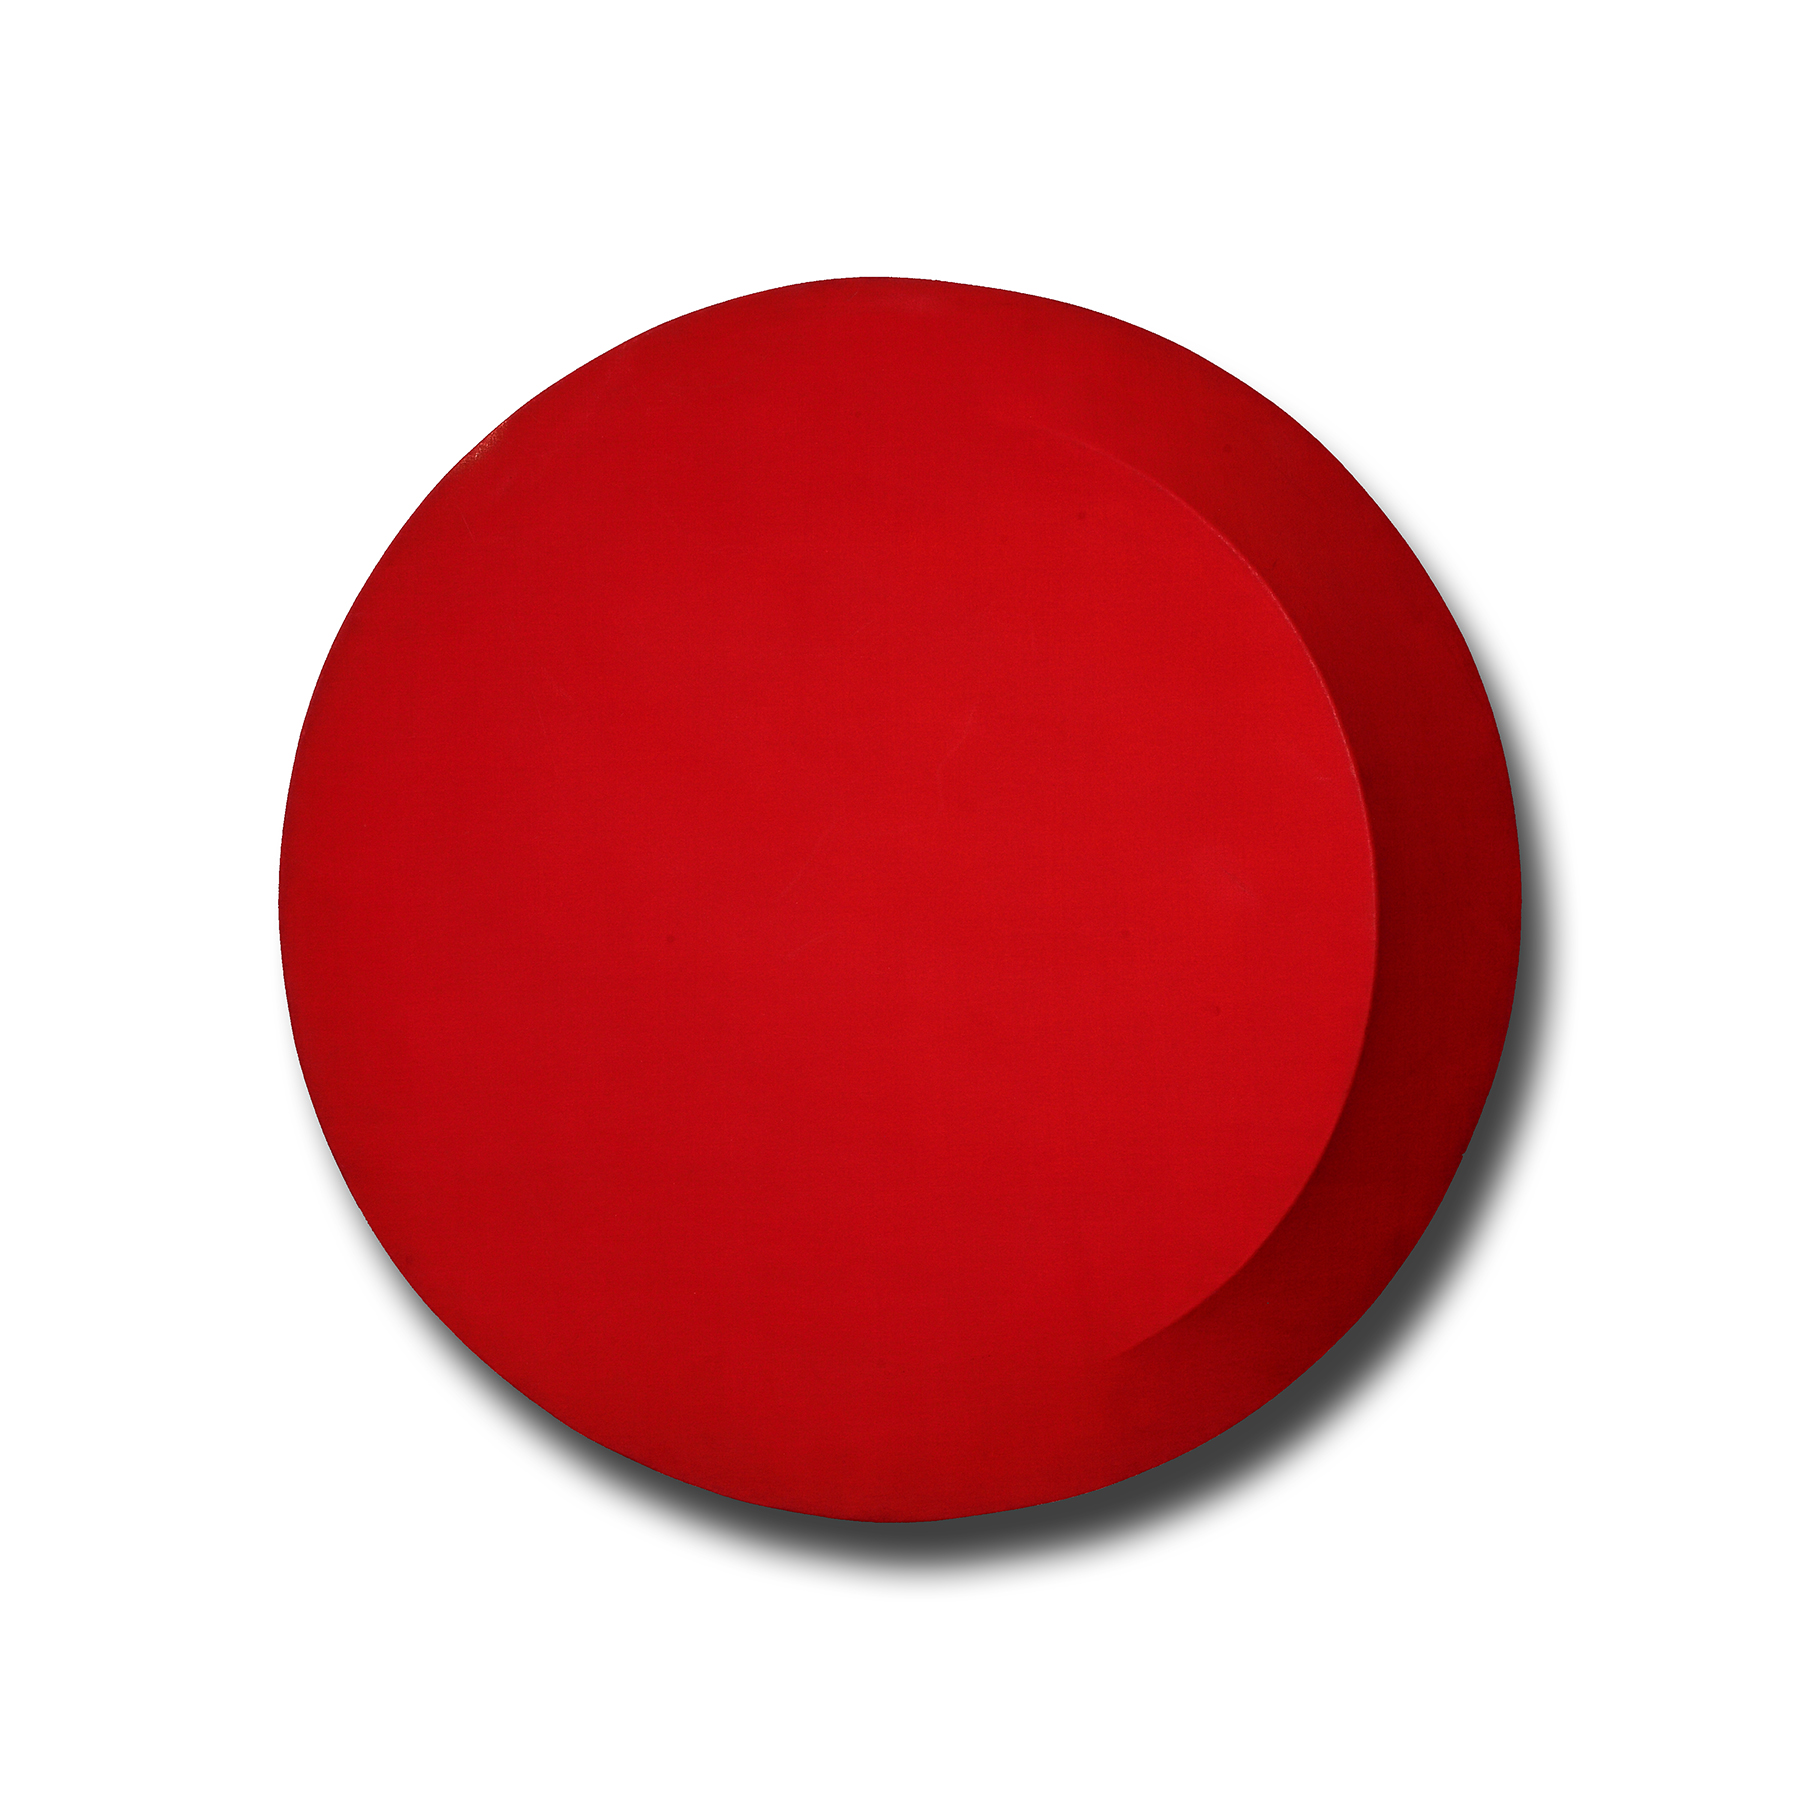 Di Benedetto_Red on Red CQ redo_32 inch diameter_acrylic on shaped canvas_1969 (2).jpg